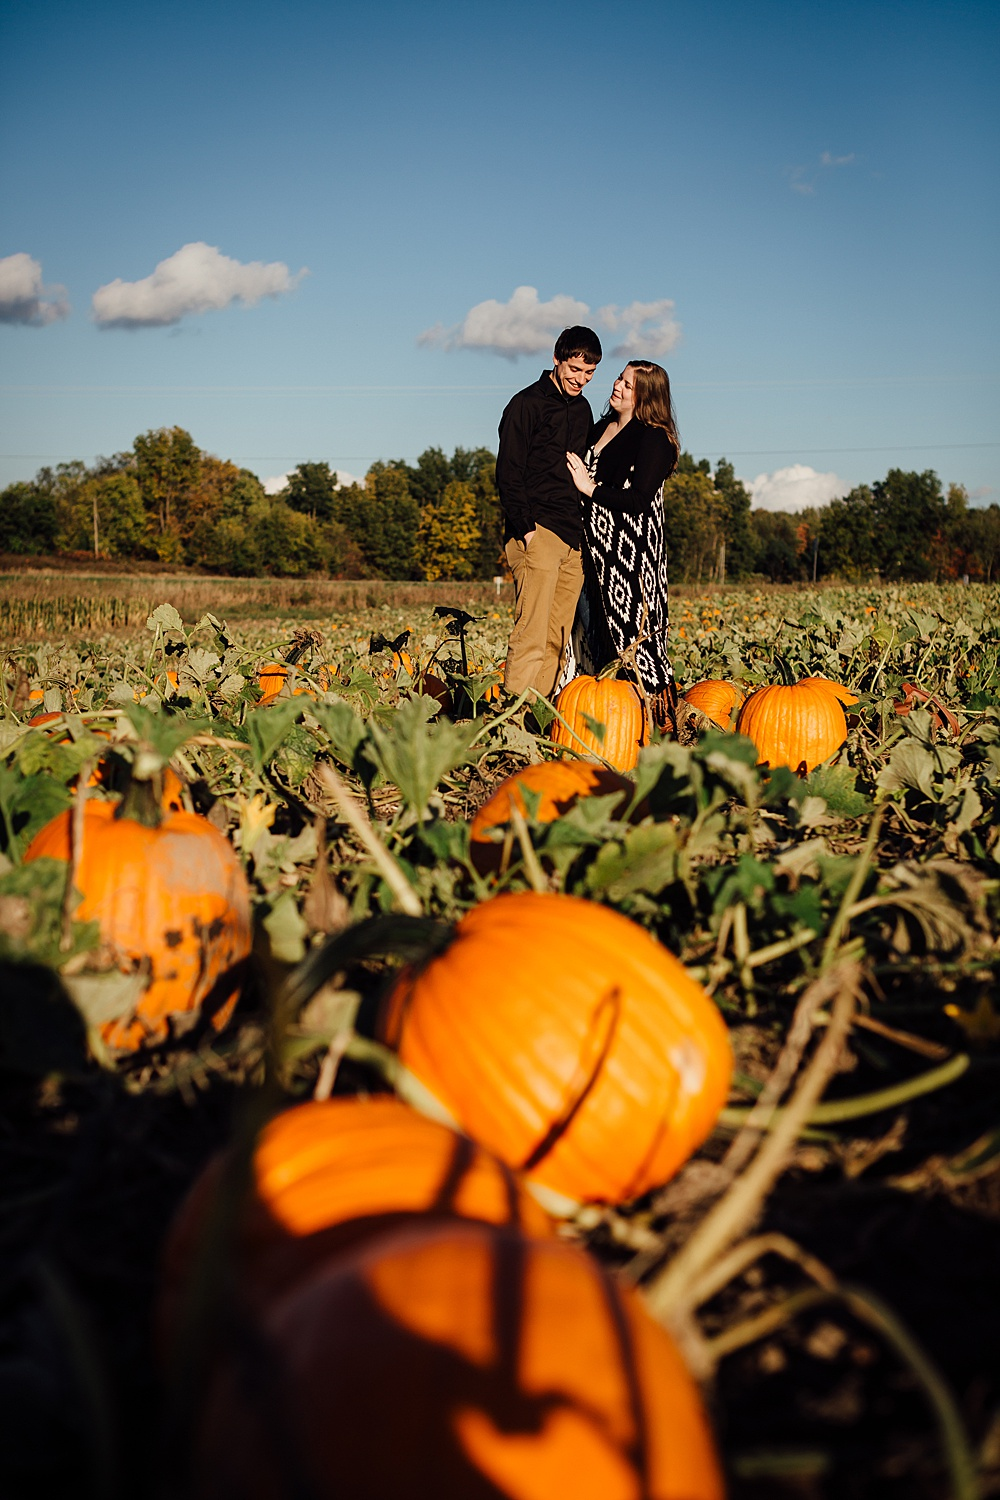 fall_apple_orchard_engagement-photography020.jpg